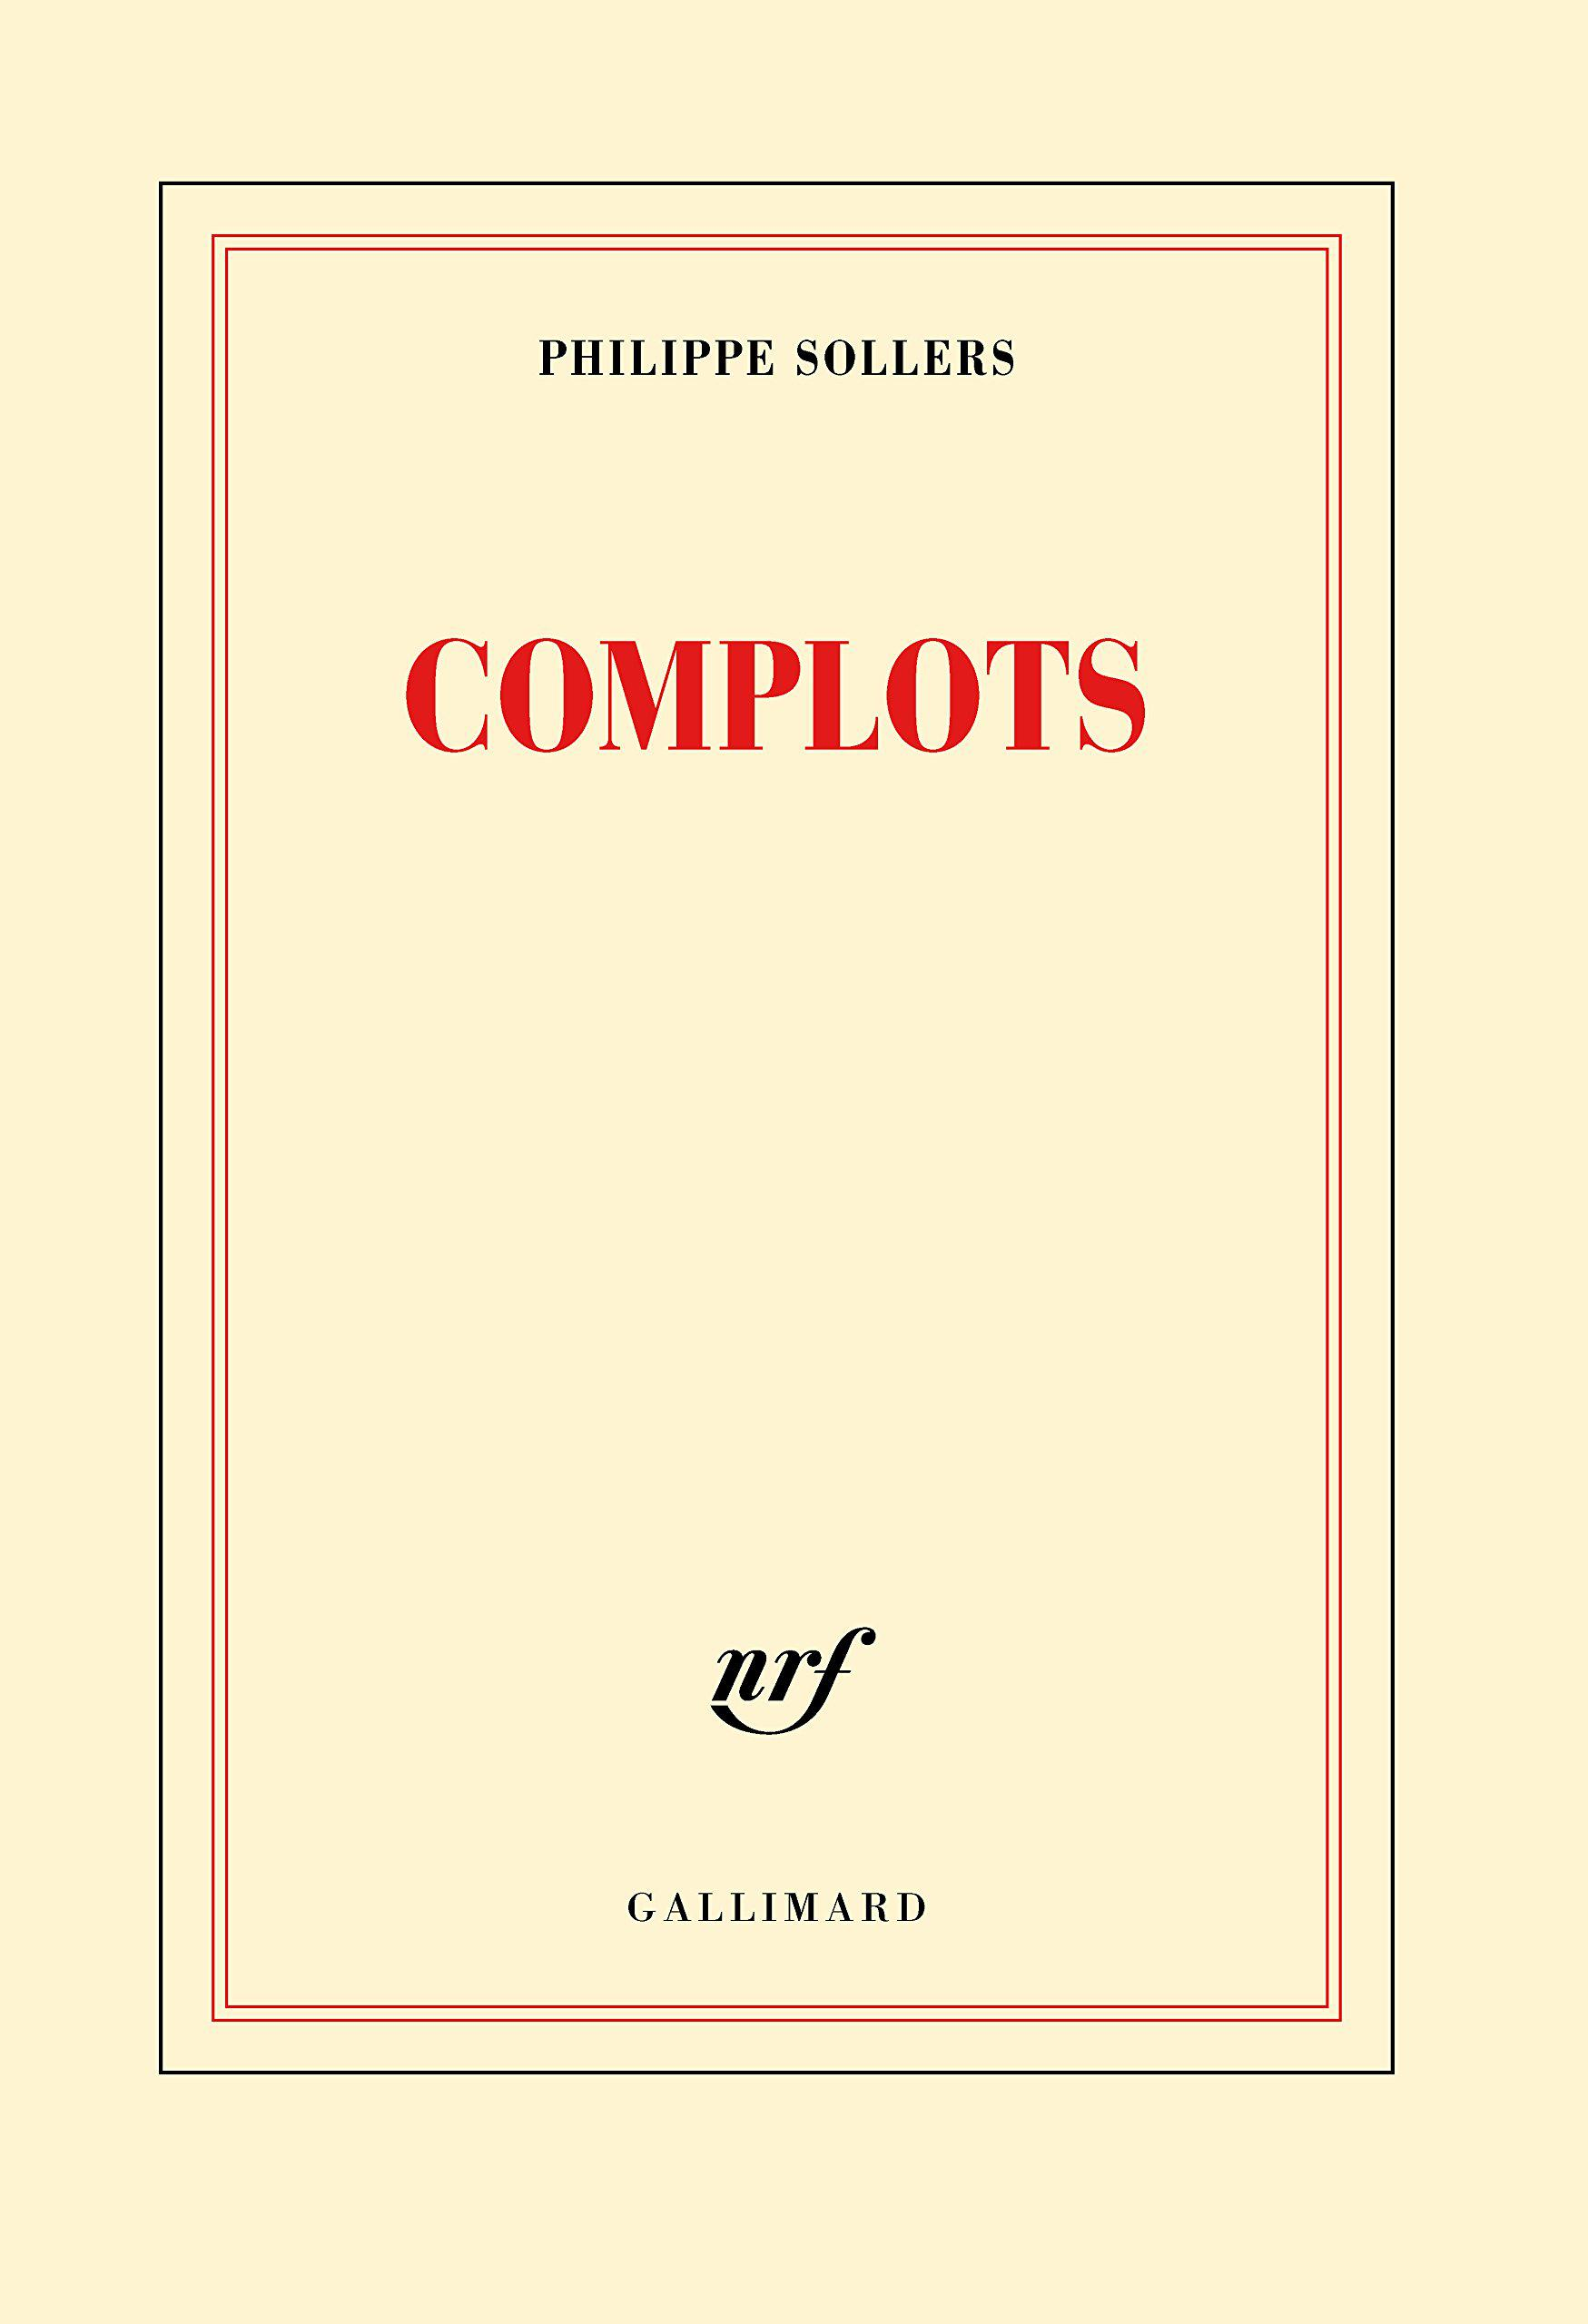 Philippe Sollers - Complots (2016)